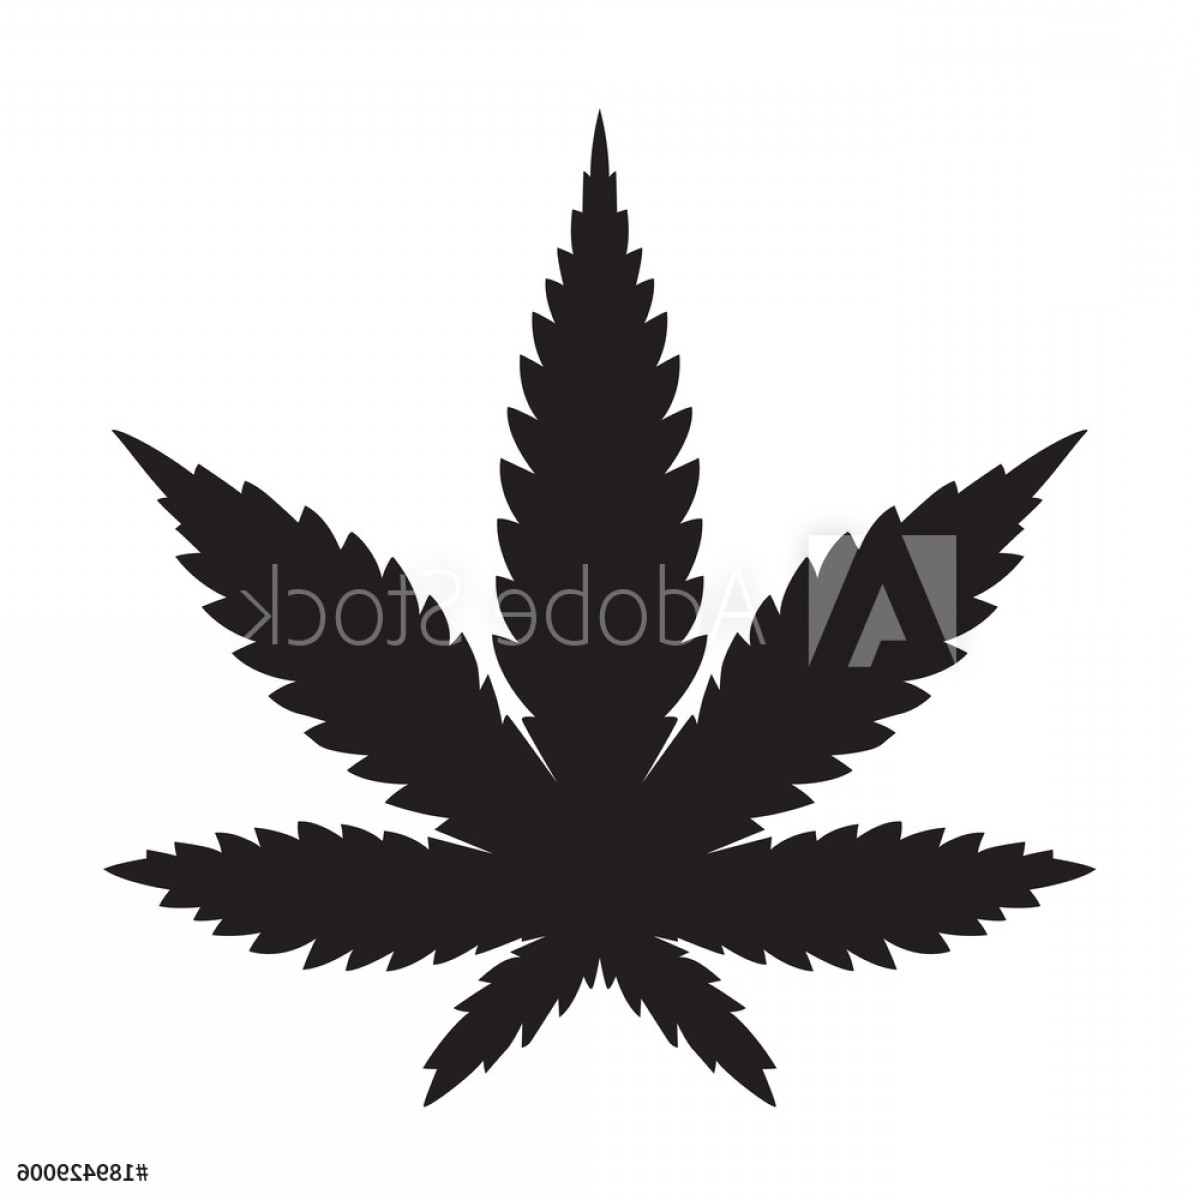 Black And White Vector Image Of Weed Plants: Weed Marijuana Cannabis Leaf Vector Icon Logo Illustration F